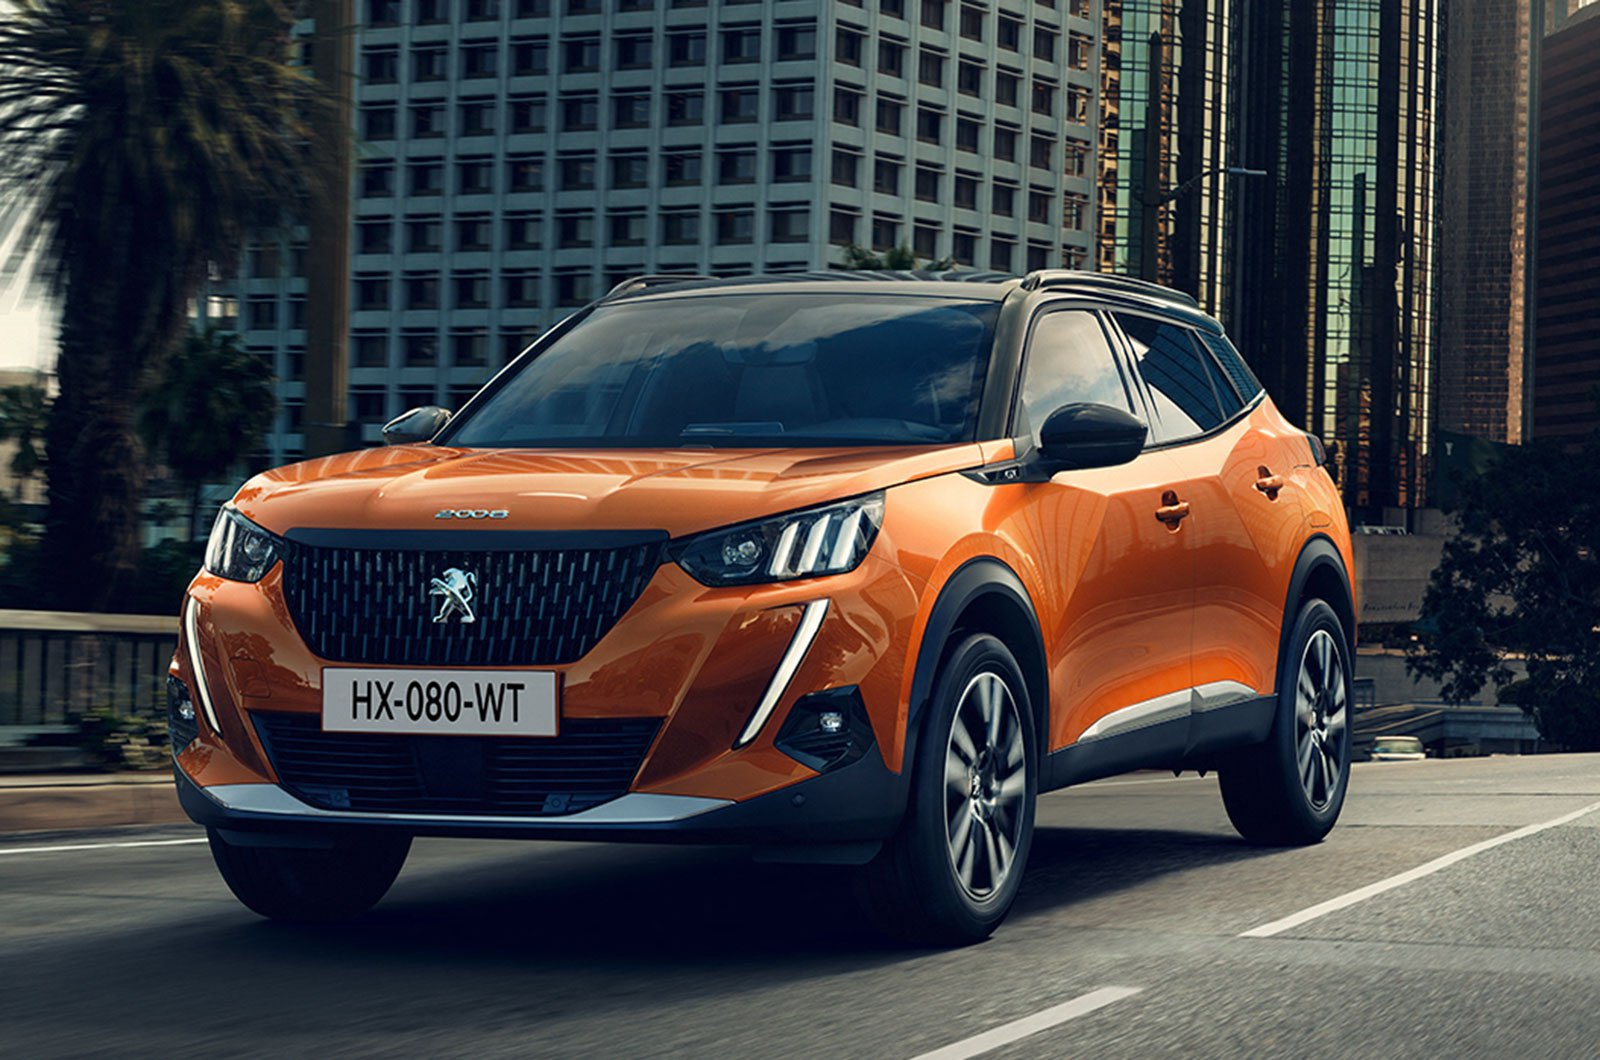 2020 Peugeot 2008 Suv Revealed  Price  Specs And Release